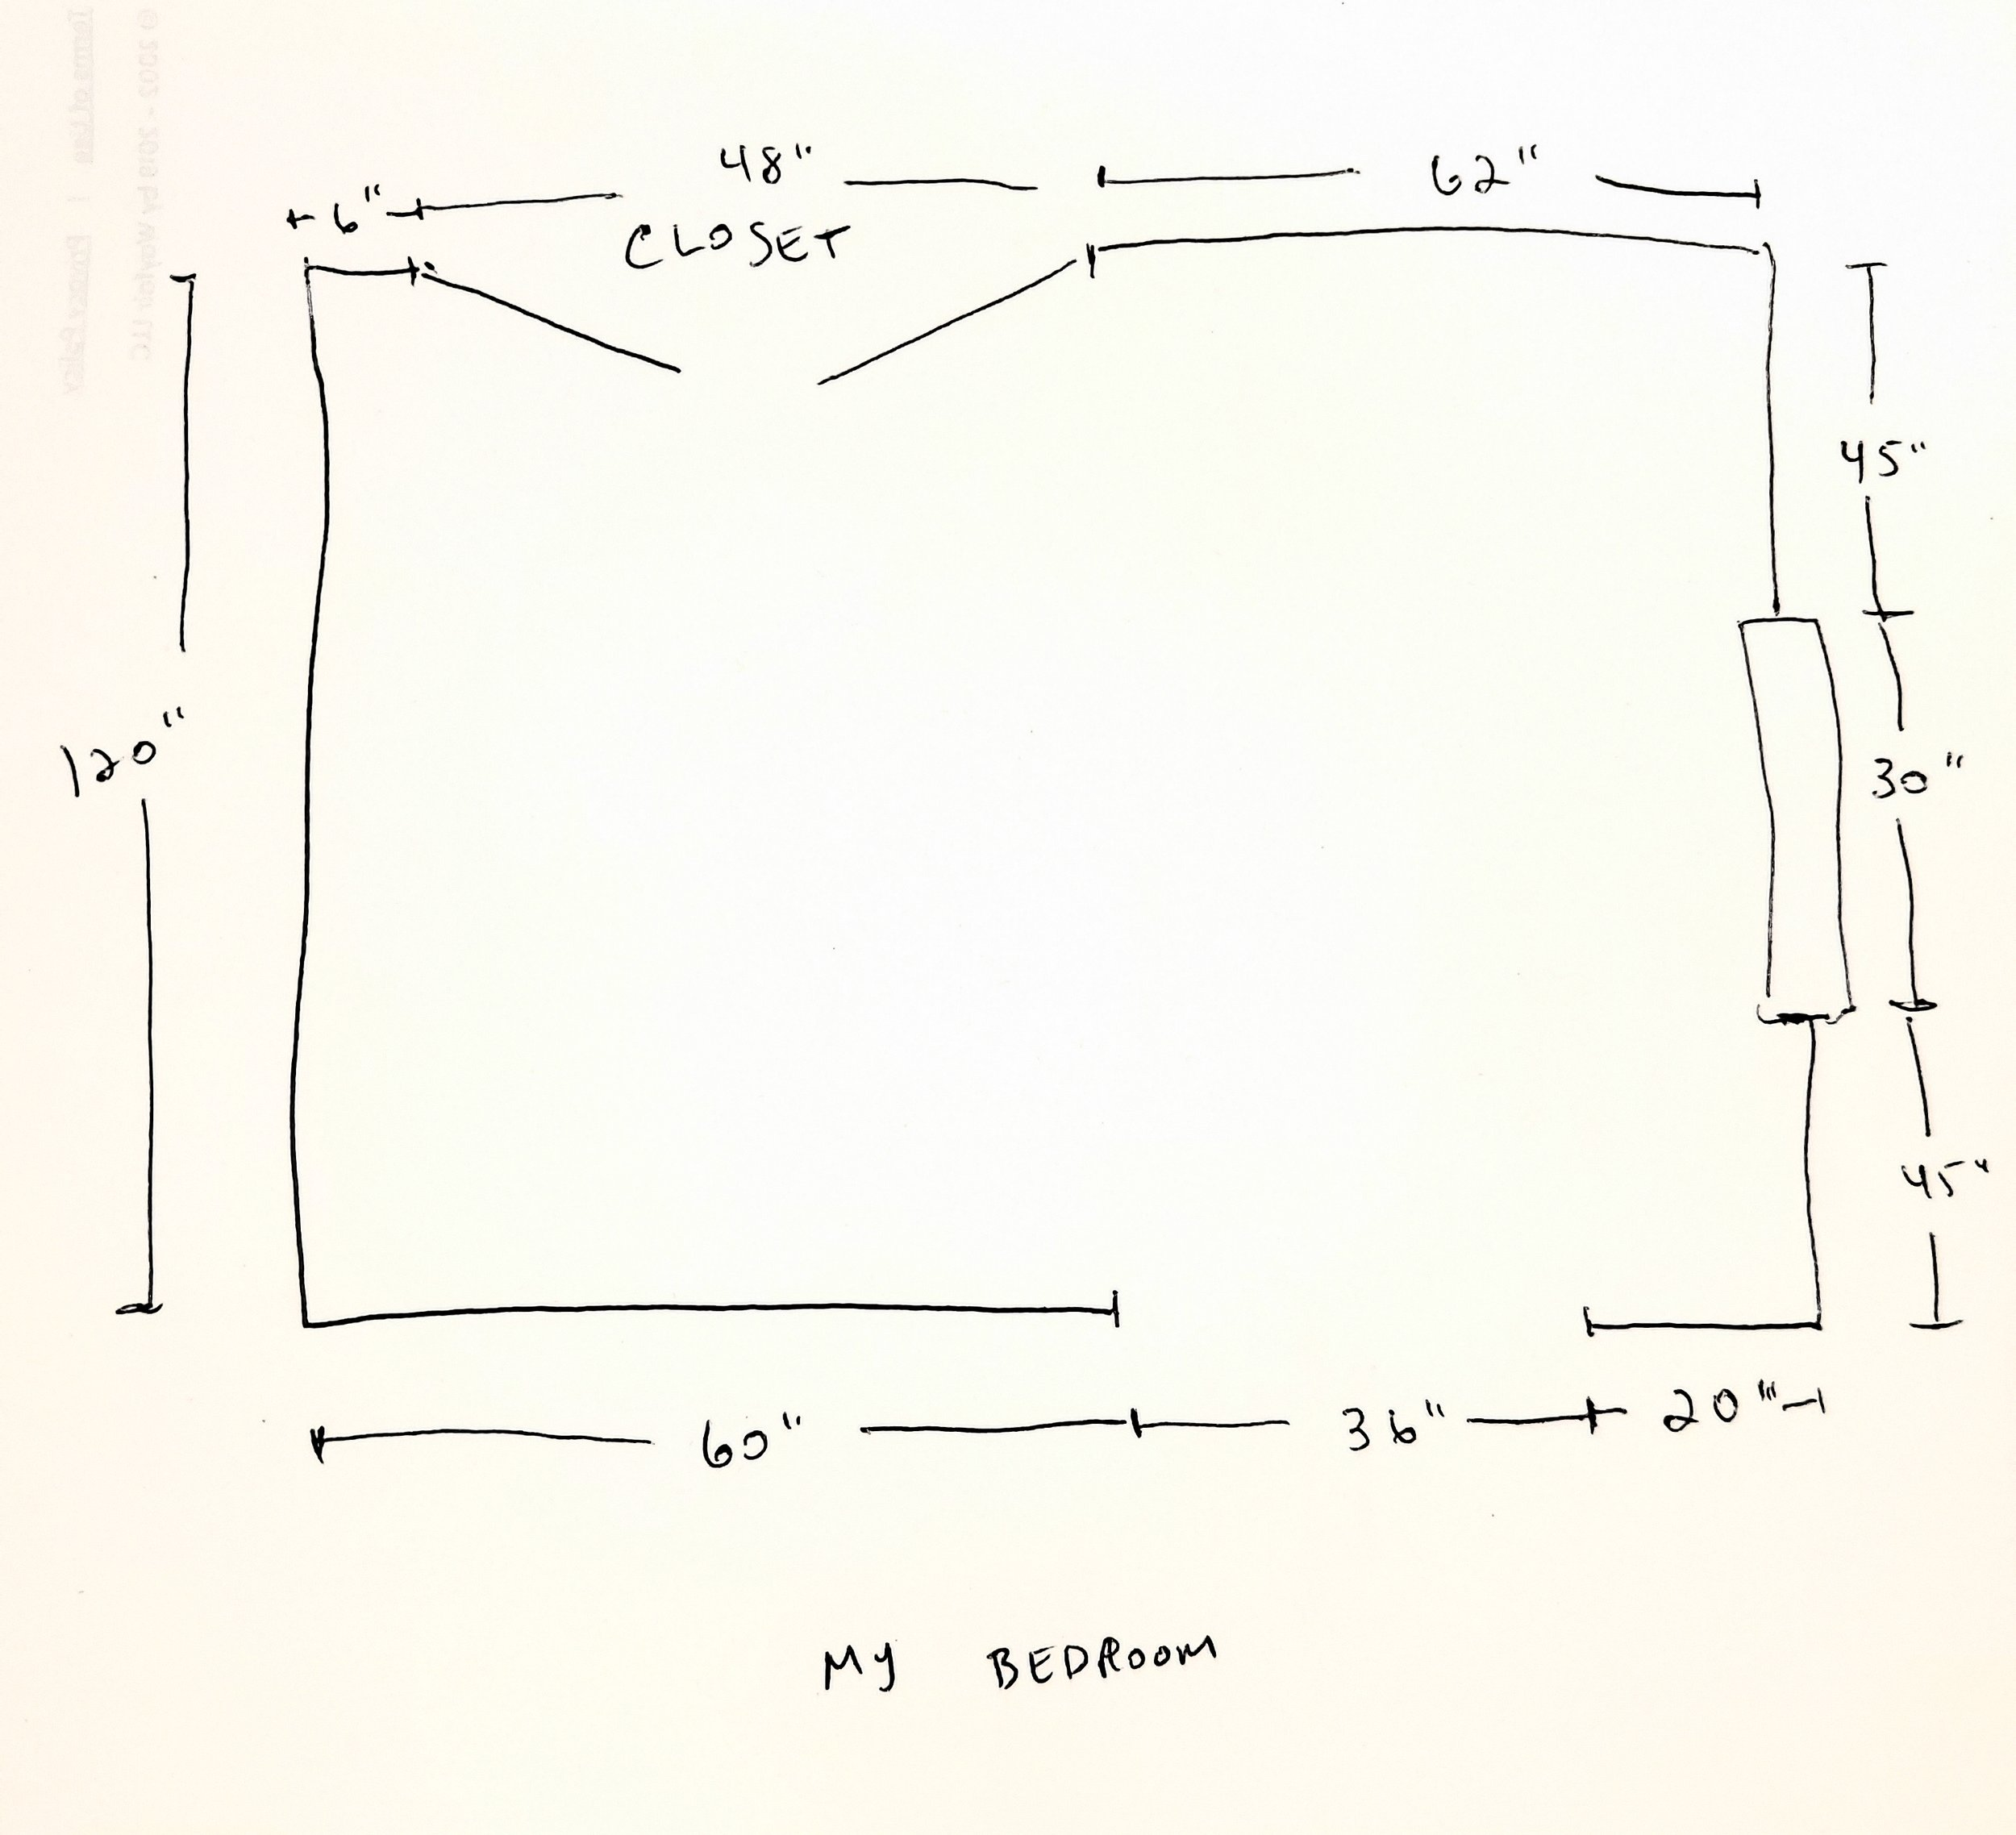 Step 1 - Take measurements of your room. Measure each wall from one end to the other. Take a piece of paper and draw an outline of the walls of your room- usually just a square, and label each wall's measurement. If there are windows and doors along your wall, do your best to measure how wide and tall they are and how far away they are to the closest corner of the room.